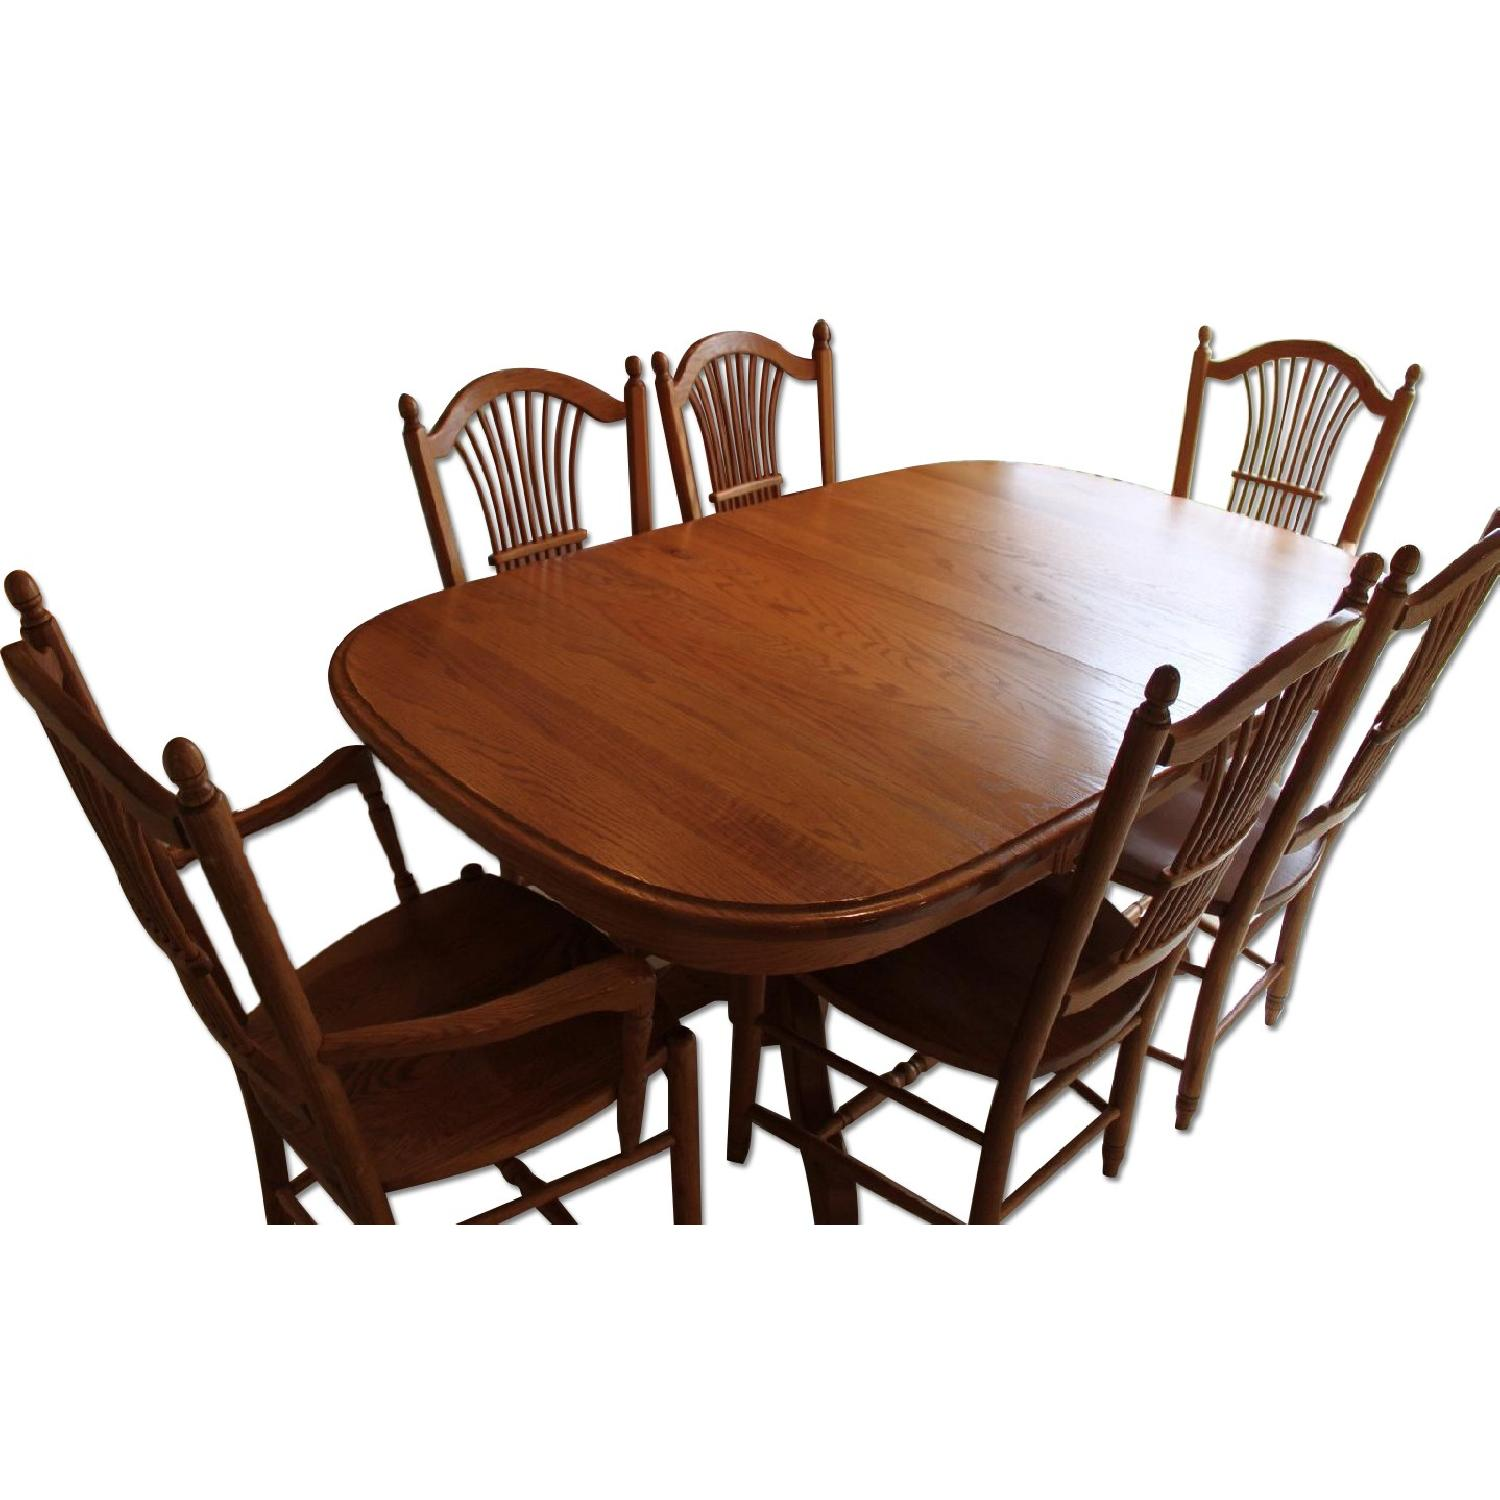 Edrich Mills Wood Shop Dining Table W/ 6 Chairs ...